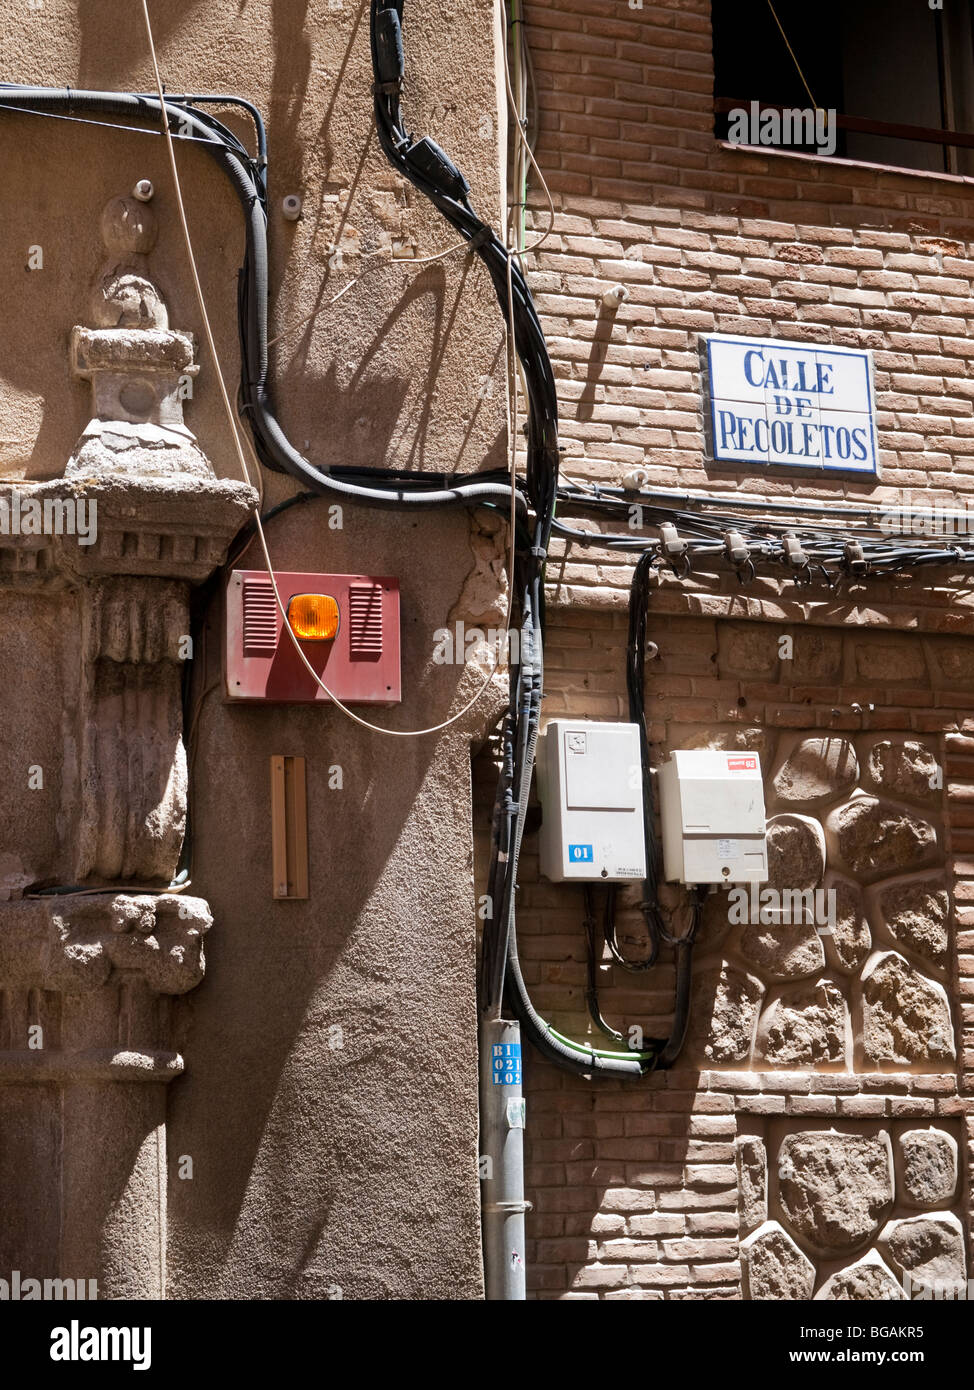 Electric Wiring Outside Of An Old House In Recoletos Street Electrical Toledo Spain